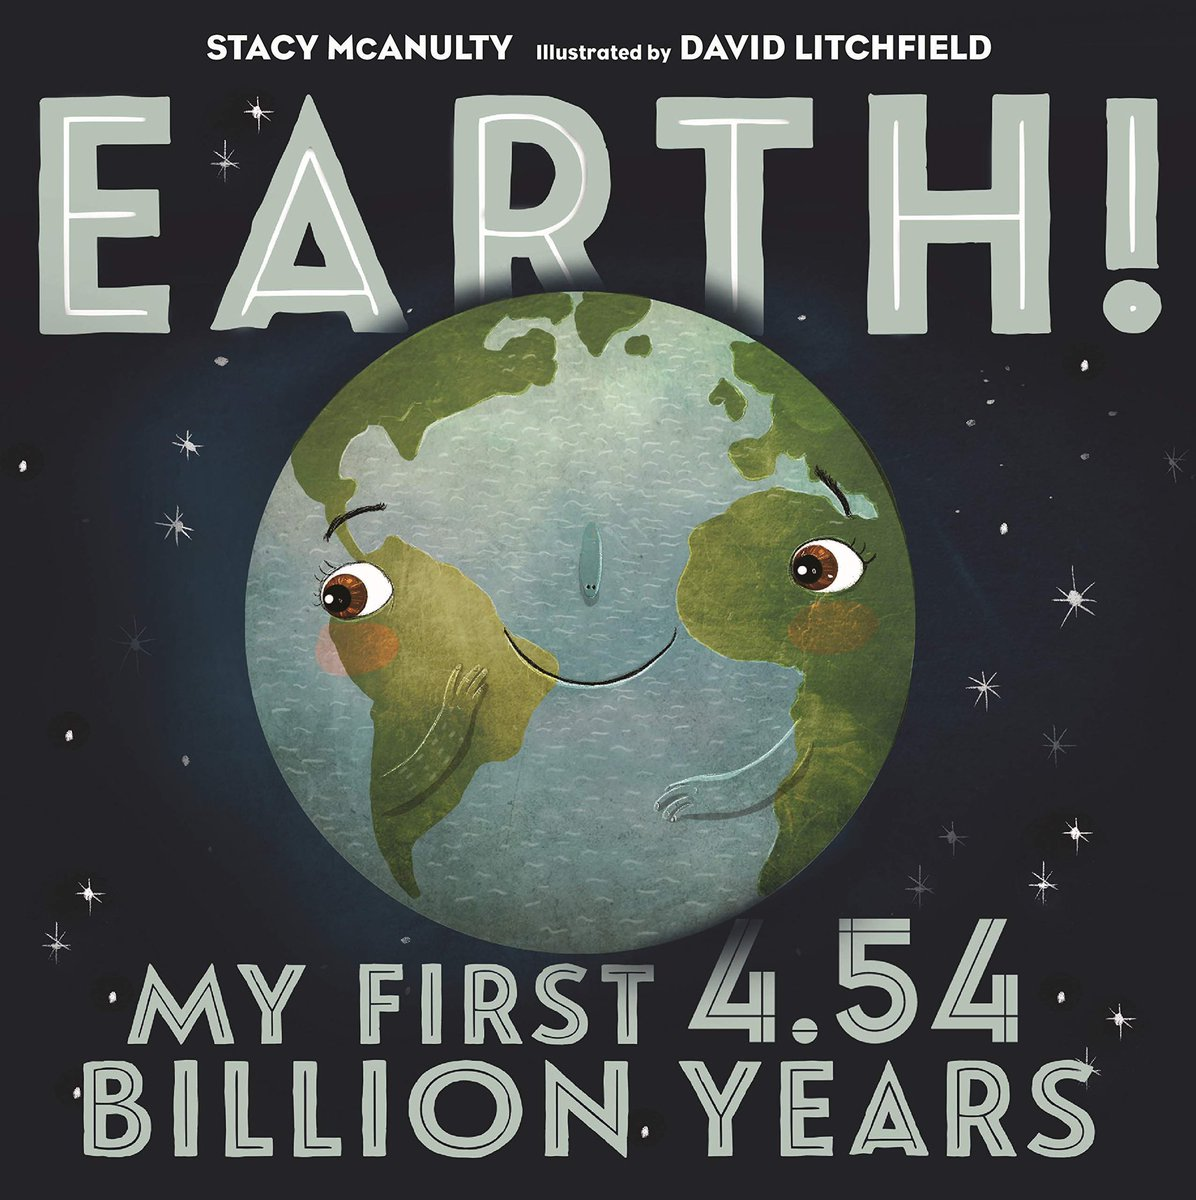 Shoutout to @OchoaJen for reading picture books to kids and families in her community every weekday on Zoom. I'm constantly learning from her. Today she celebrated Earth Day with this incredible title by @stacymcanulty: https://t.co/zB3ThMvdRU